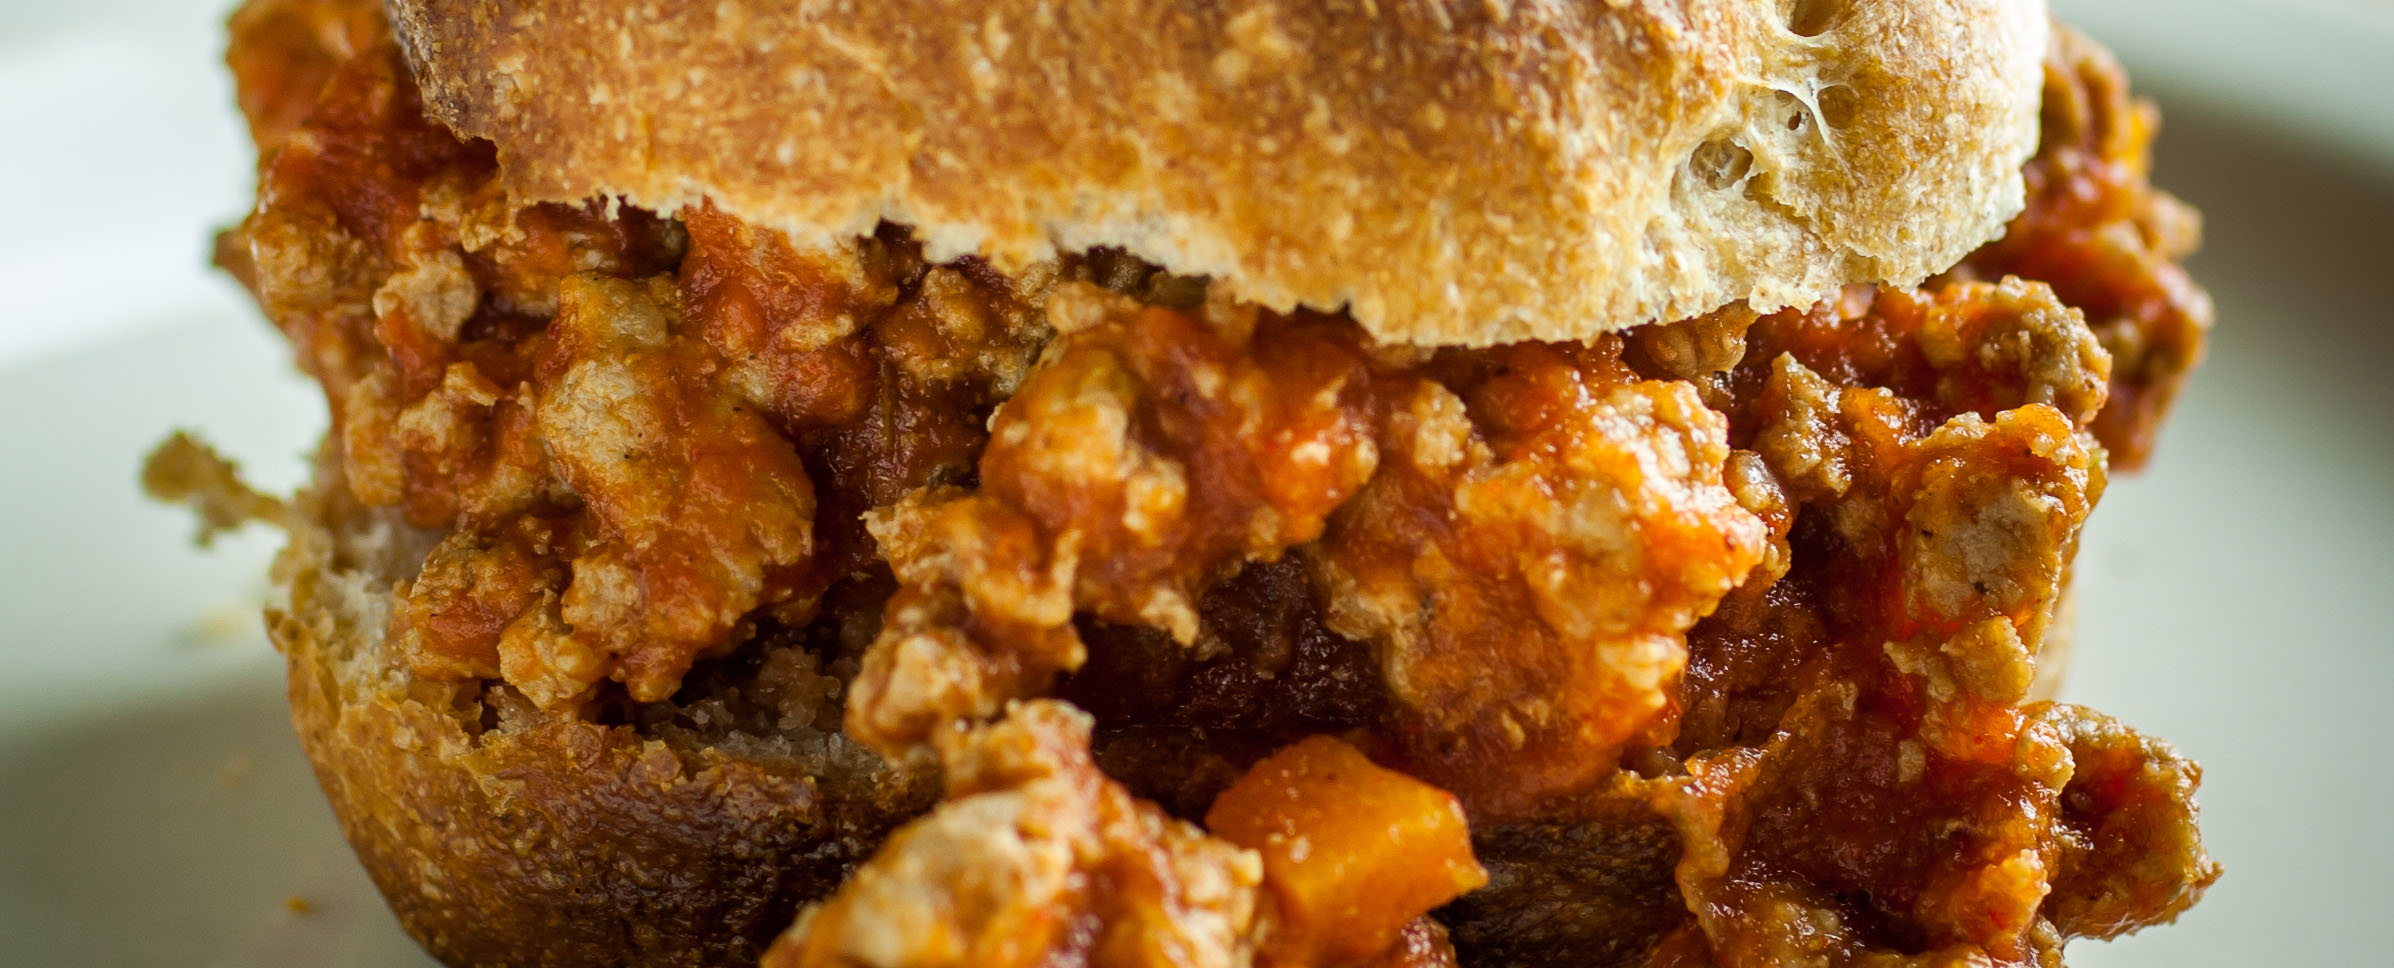 Turkey Sloppy Joe